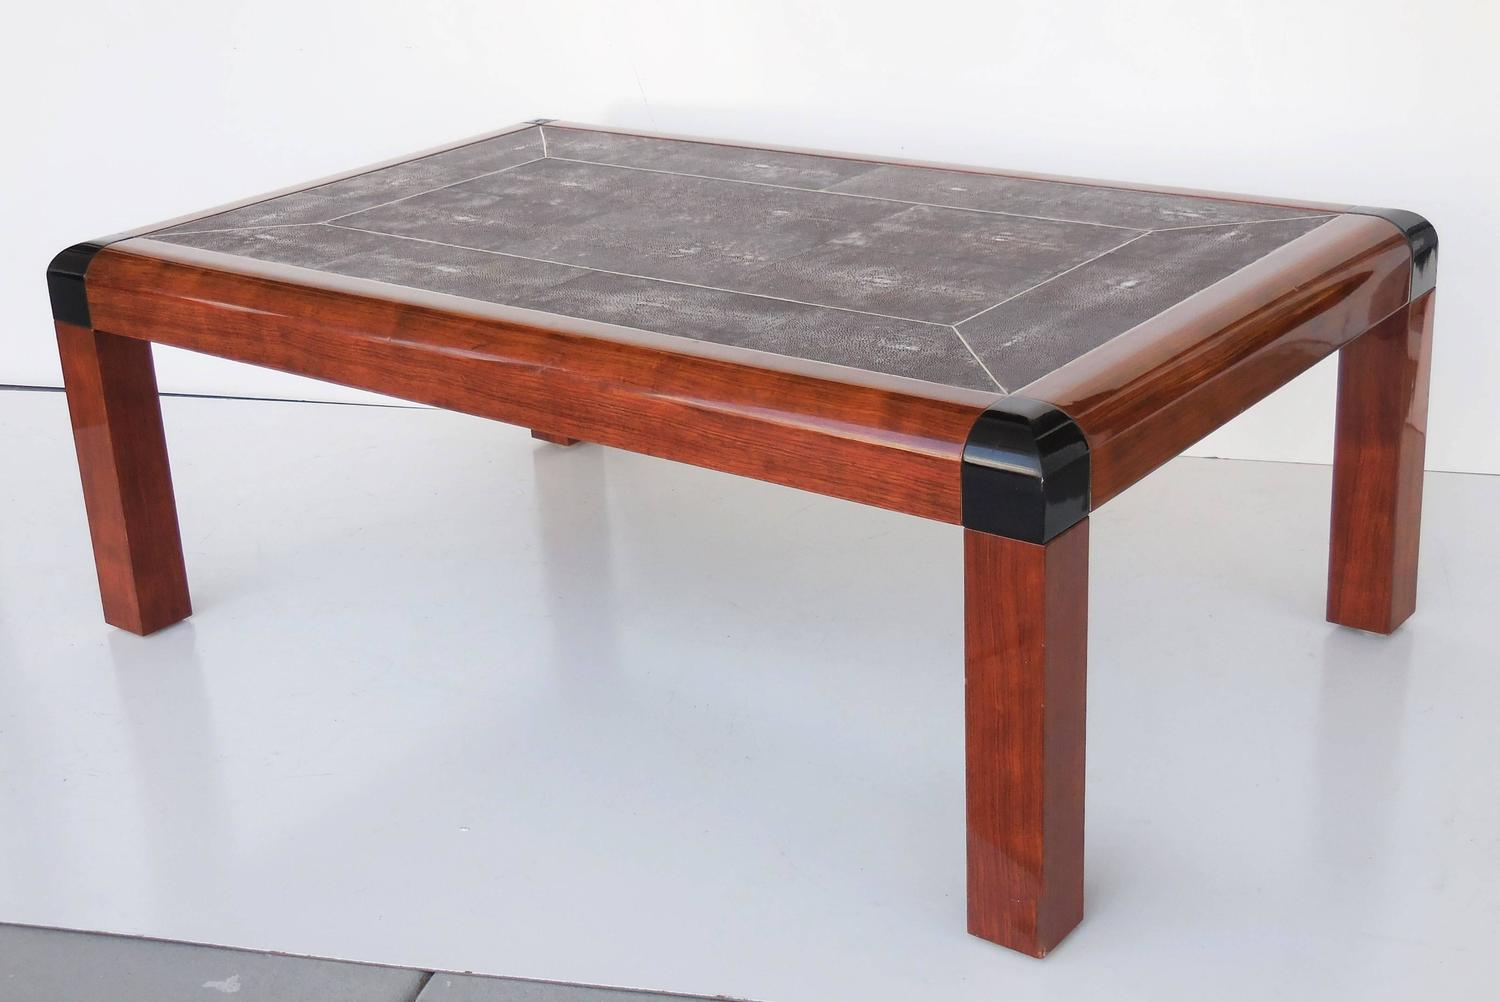 karl springer shagreen and wood coffee table 1987 for sale at 1stdibs